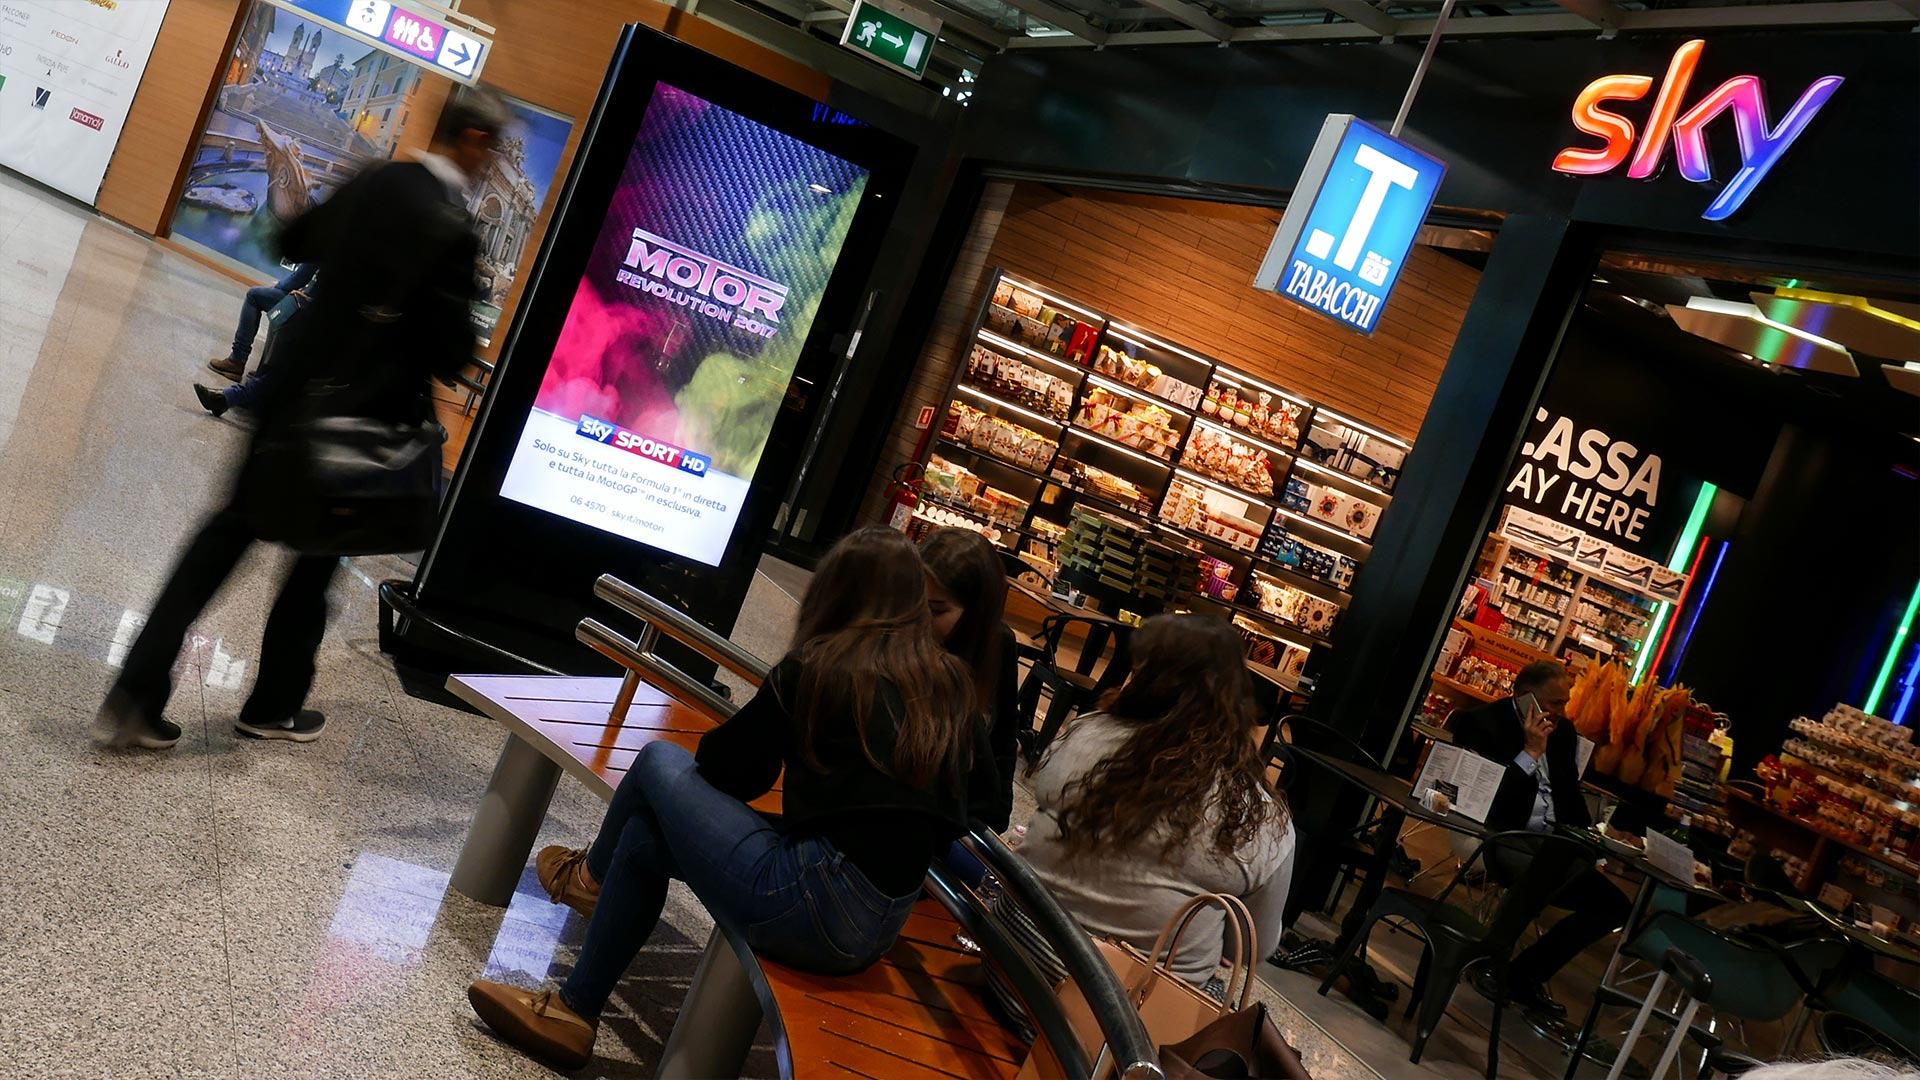 Digital totem and Sky streaming in airport